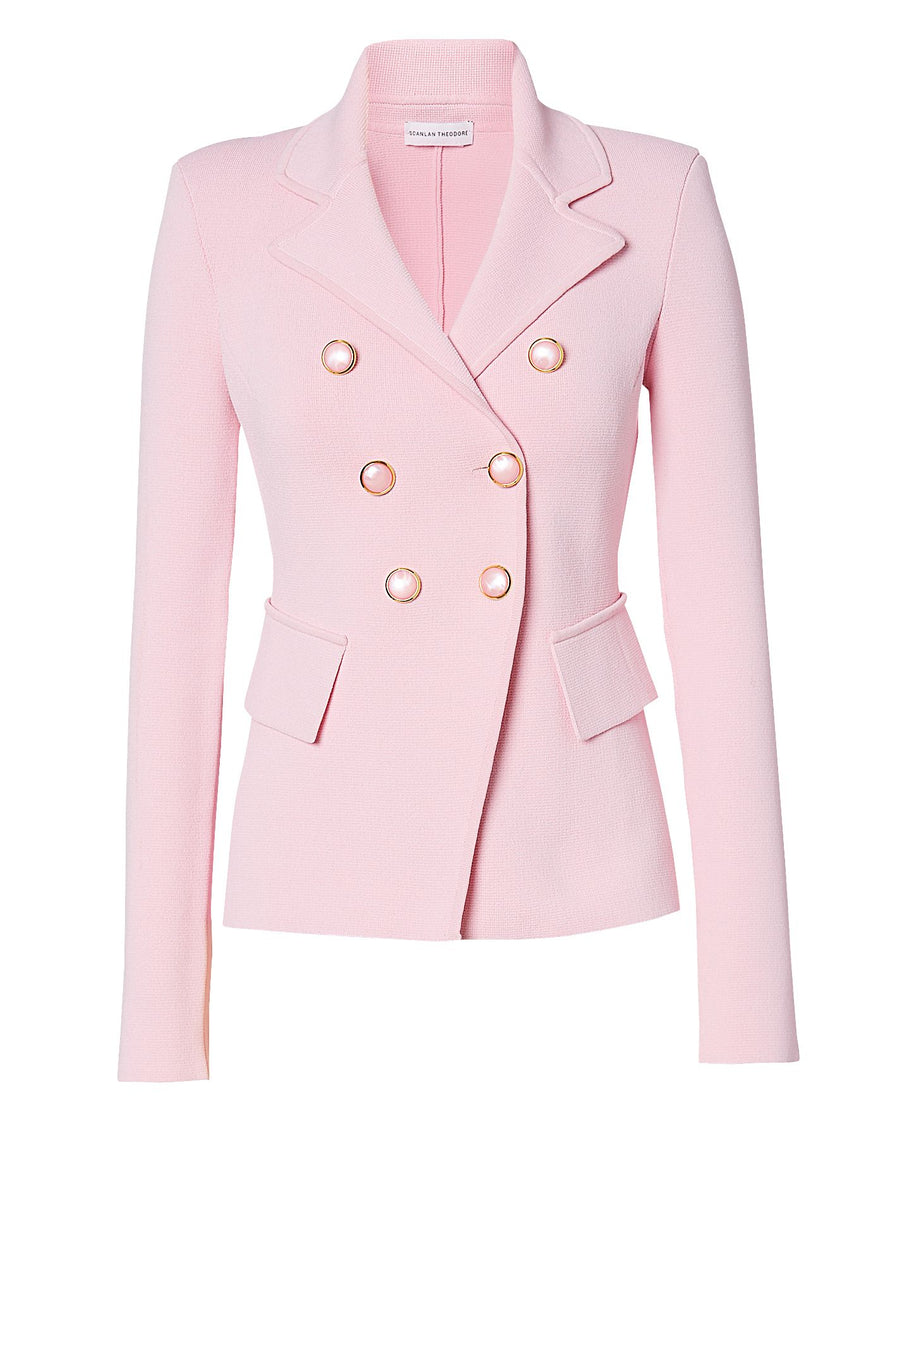 CREPE KNIT TAILORED JACKET PALE PINK